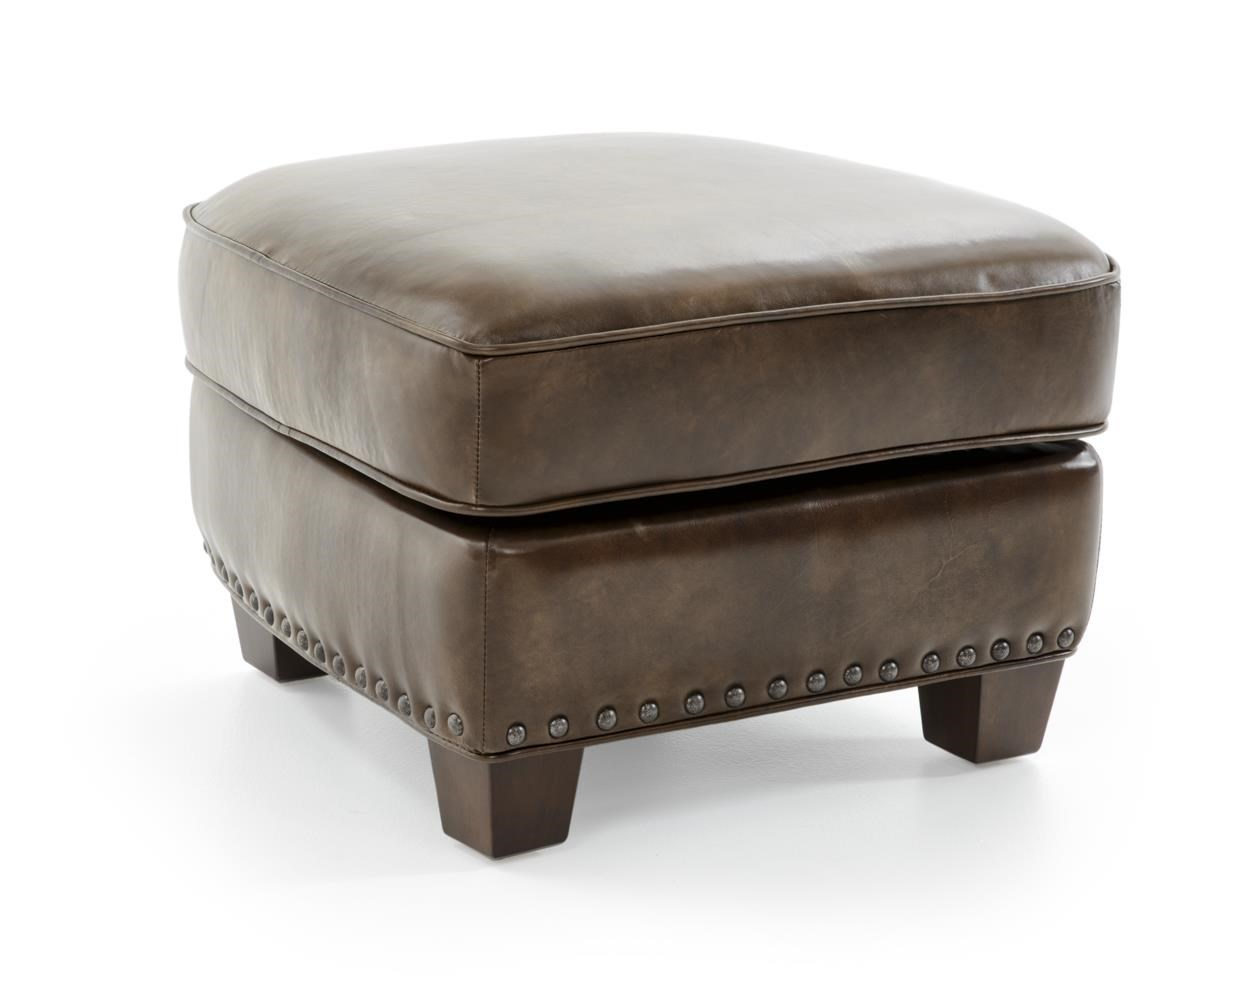 Futura Leather 6307 Storage Ottoman - Item Number: 6307N-63 2079F EPIC